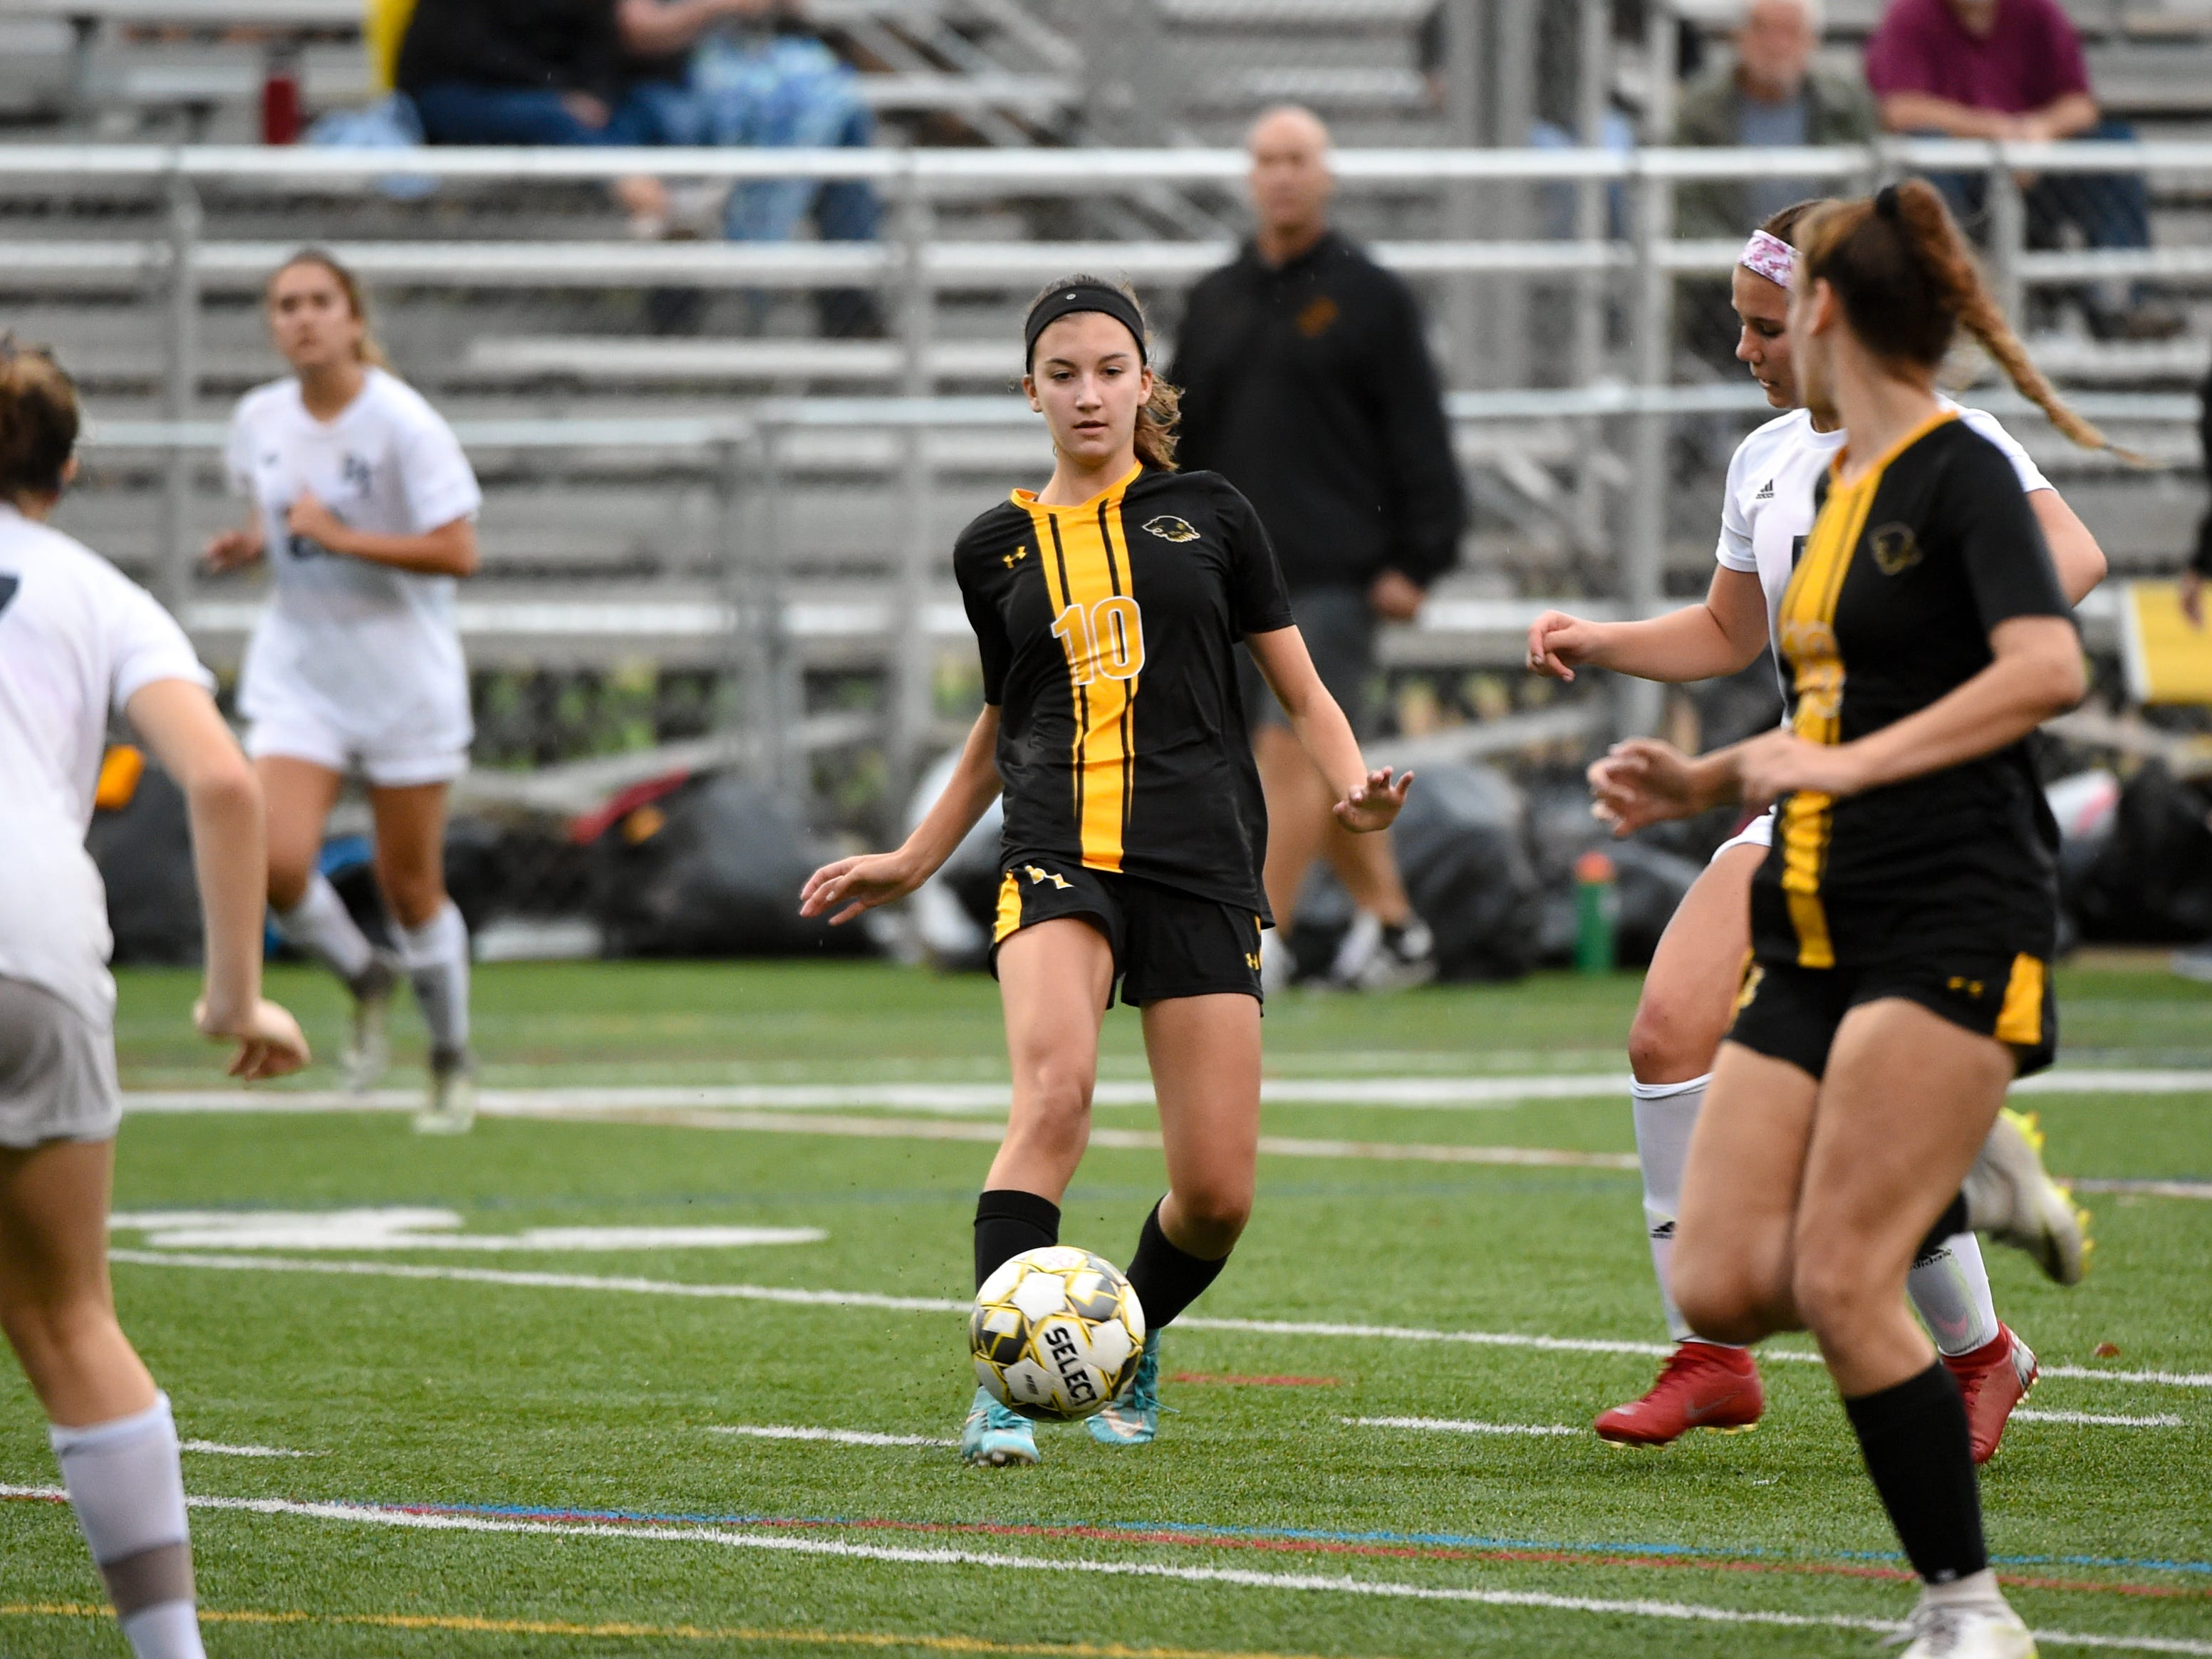 Brooke Wentz (10) rockets a pass to a teammate, during the girls soccer game between Red Lion and Dallastown, October 11, 2018. The Lady Lions beat the Wildcats 4-0.